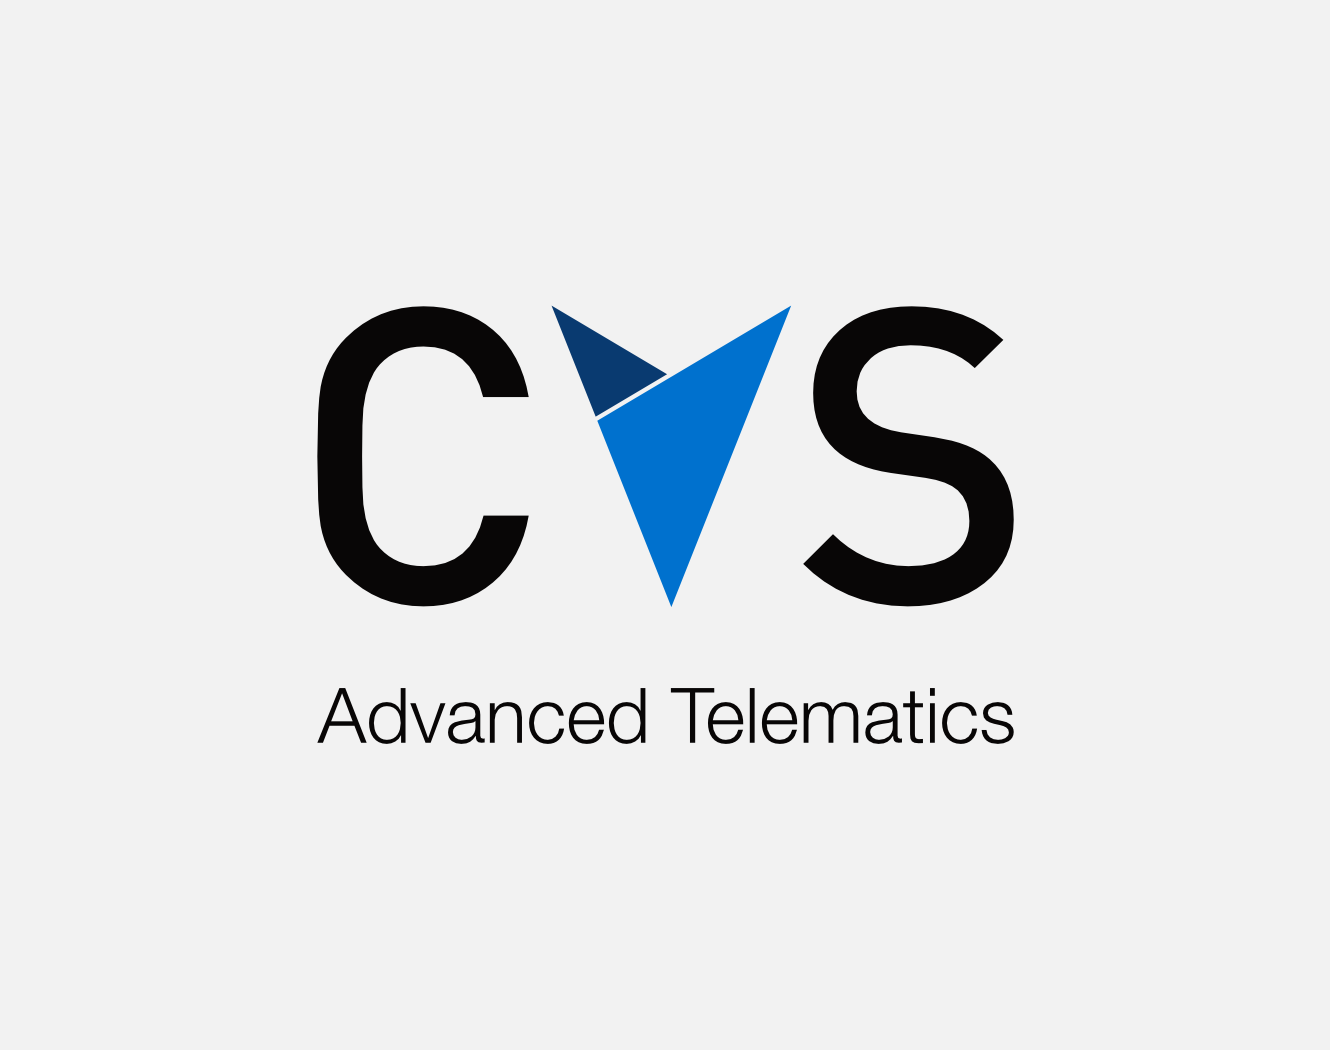 Logo CVS Advanced Telematics